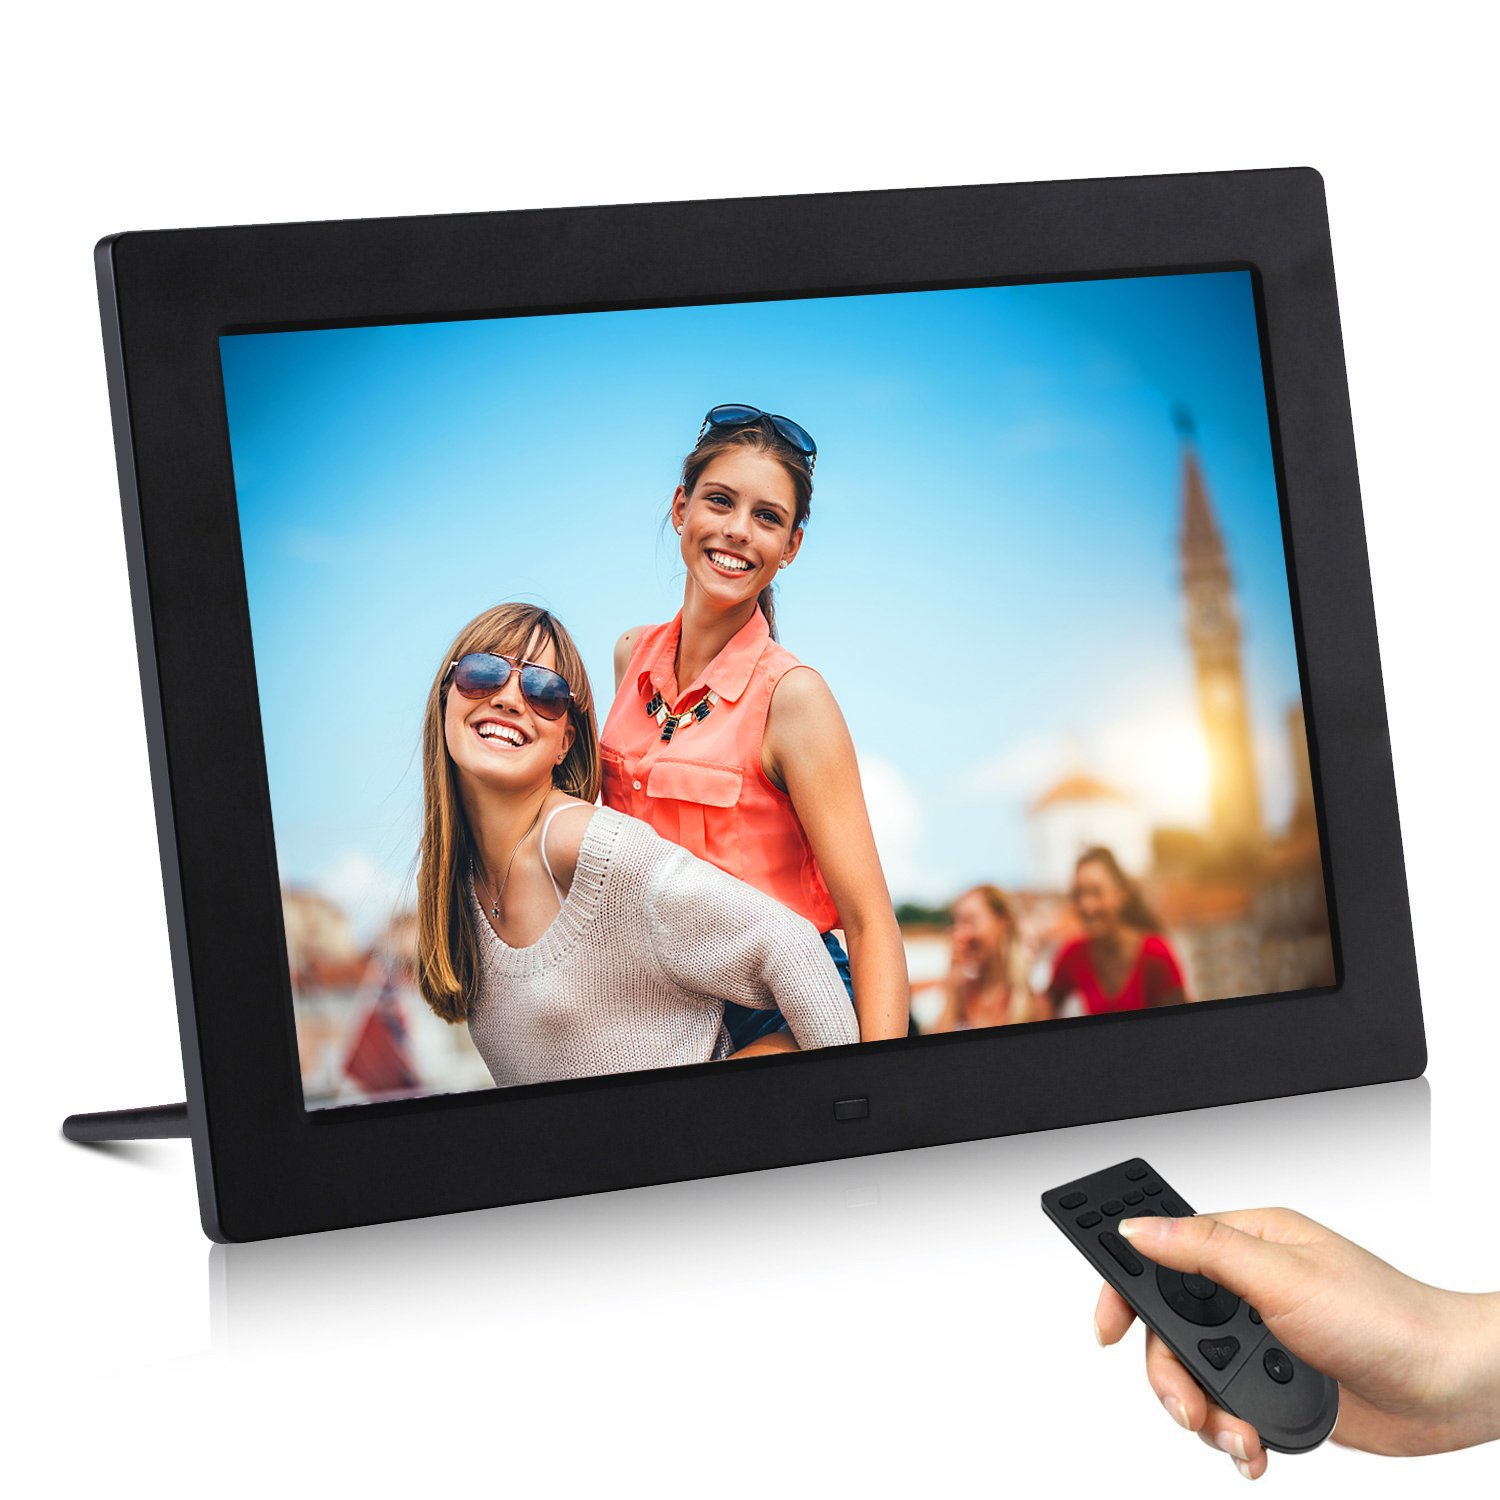 AKImart 13.3 inch Digital Picture Frame 1280x800 support HDMI MP3 Video & Music Playback Calendar Photo Frames with Remote Control (Unique UI Surface)